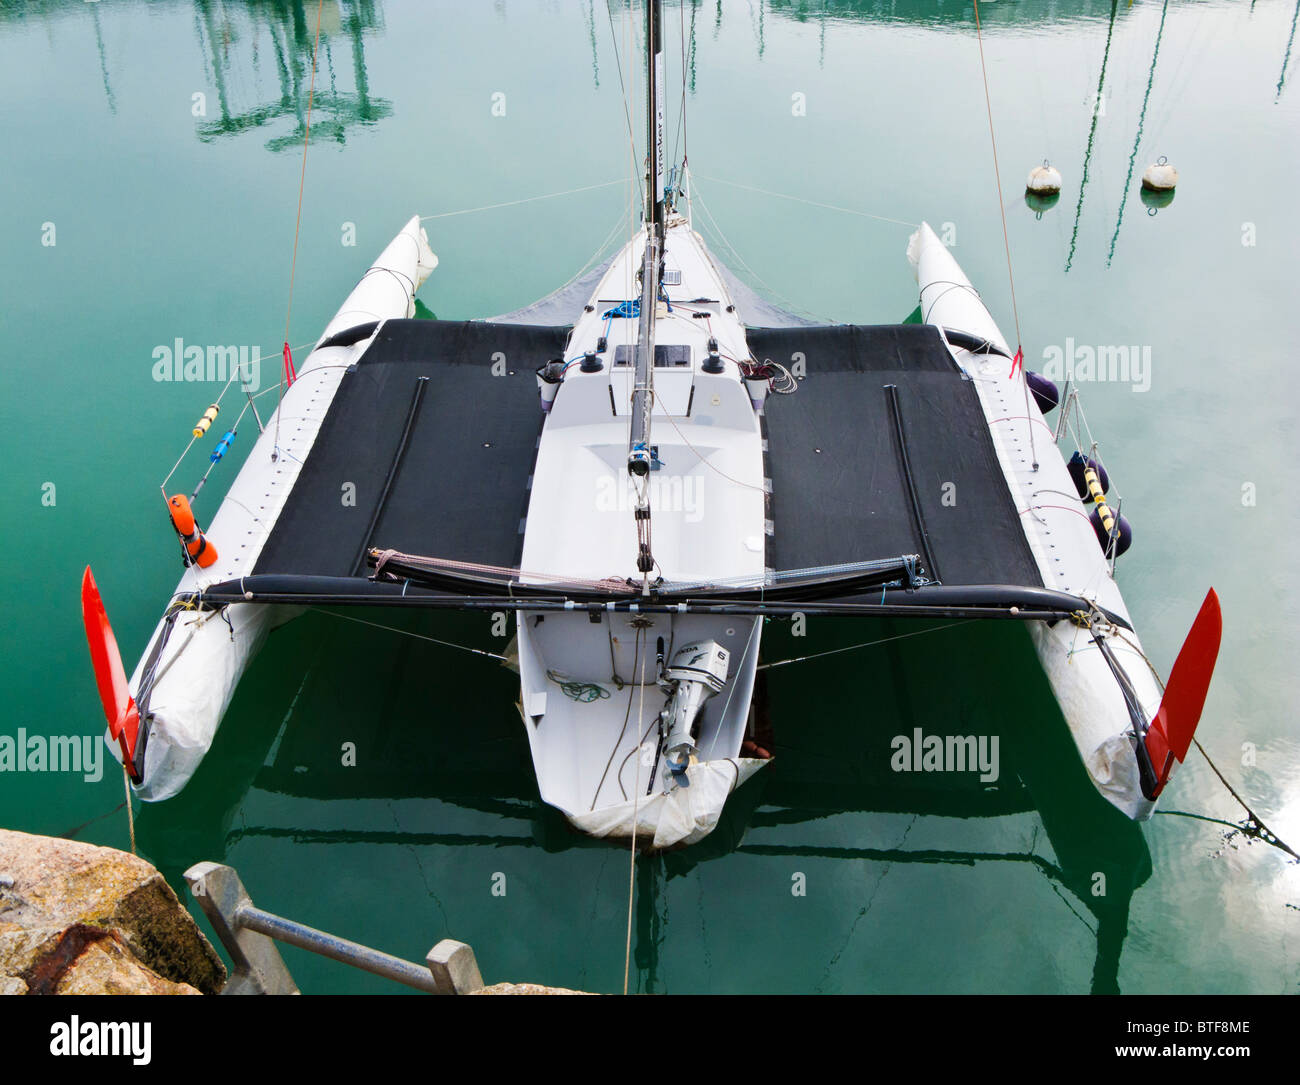 Catamaran moored - Stock Image